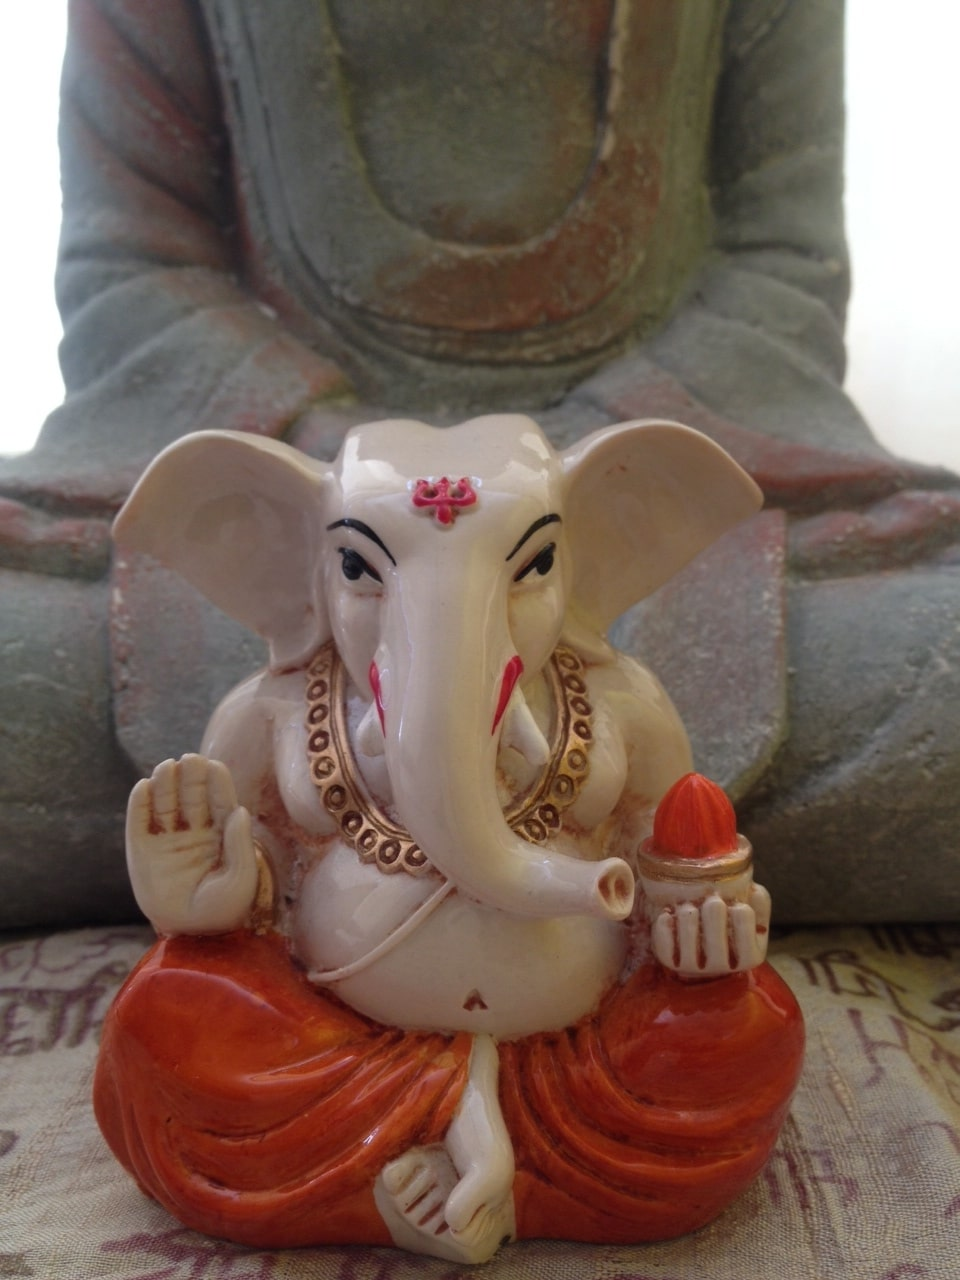 Did Ganesh steal my keys to teach me a lesson?